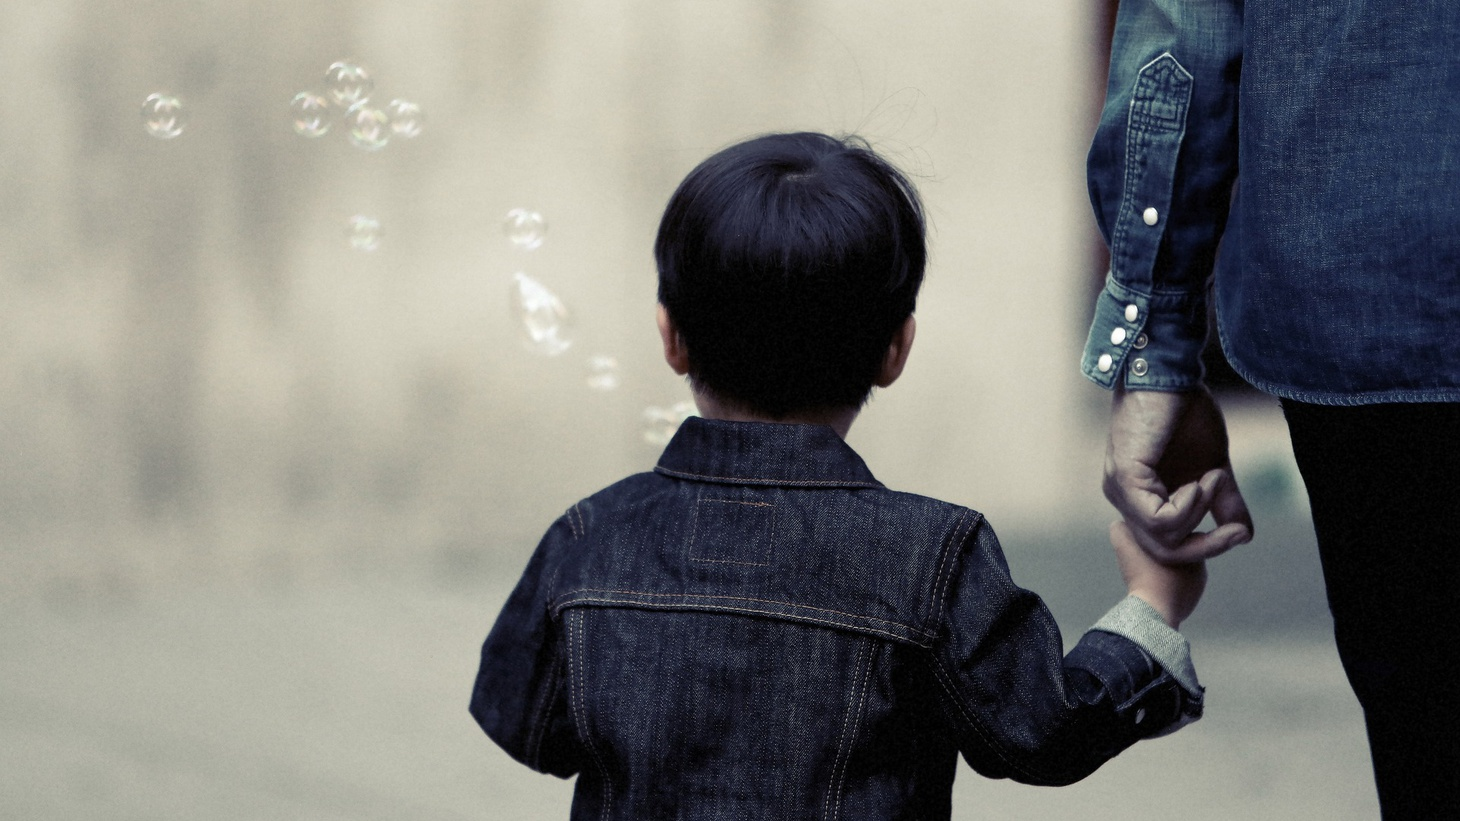 A boy blowing bubbles with his guardian.